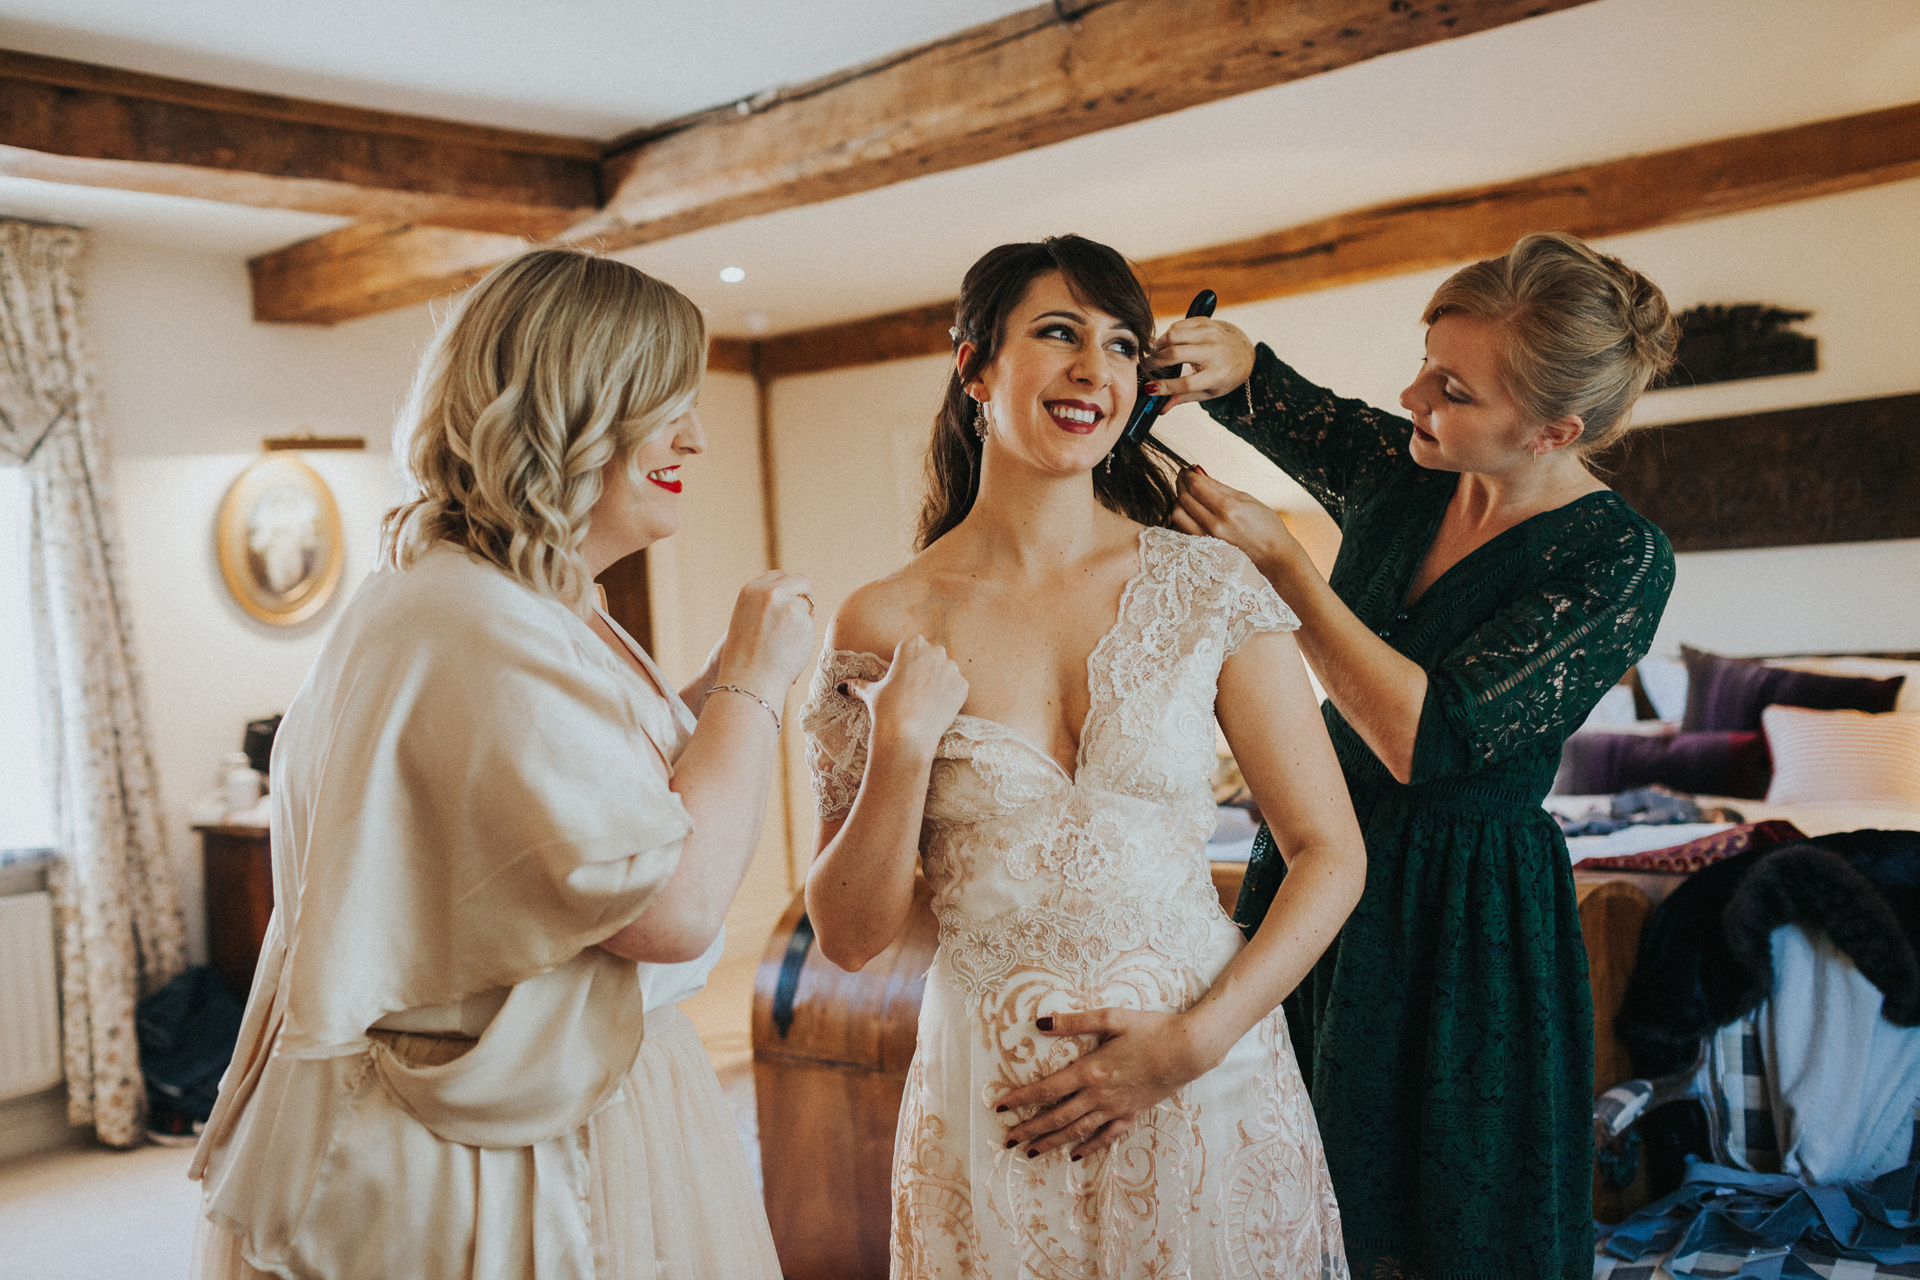 Bride laughing as bridesmaids and friends fuss over her.